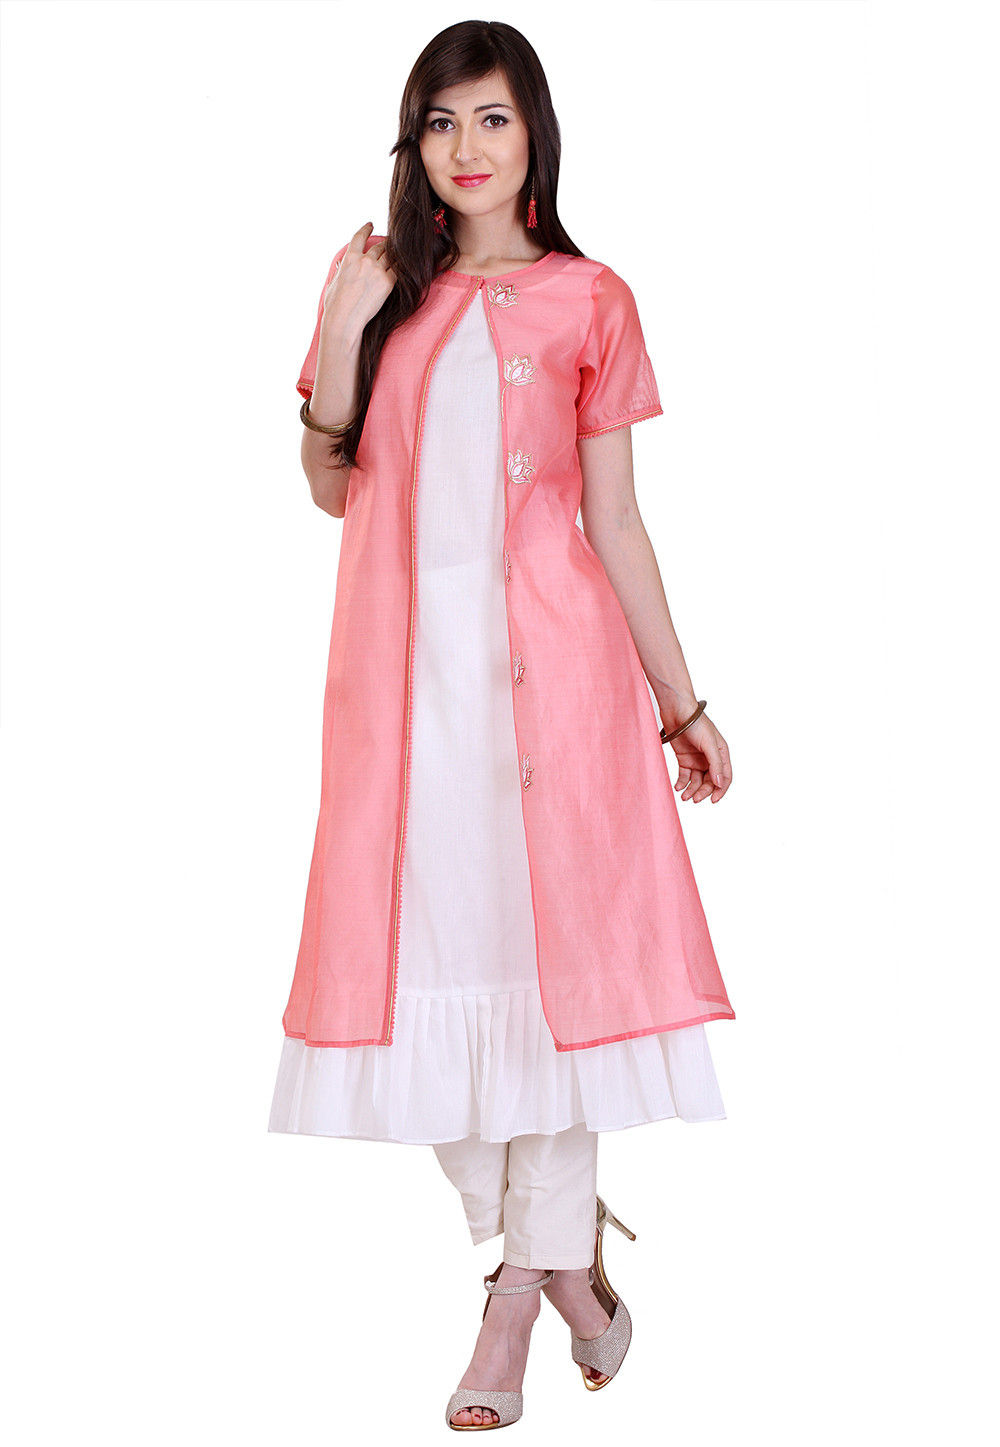 Embroidered Art Chanderi Silk Long Kurta in Peach and White